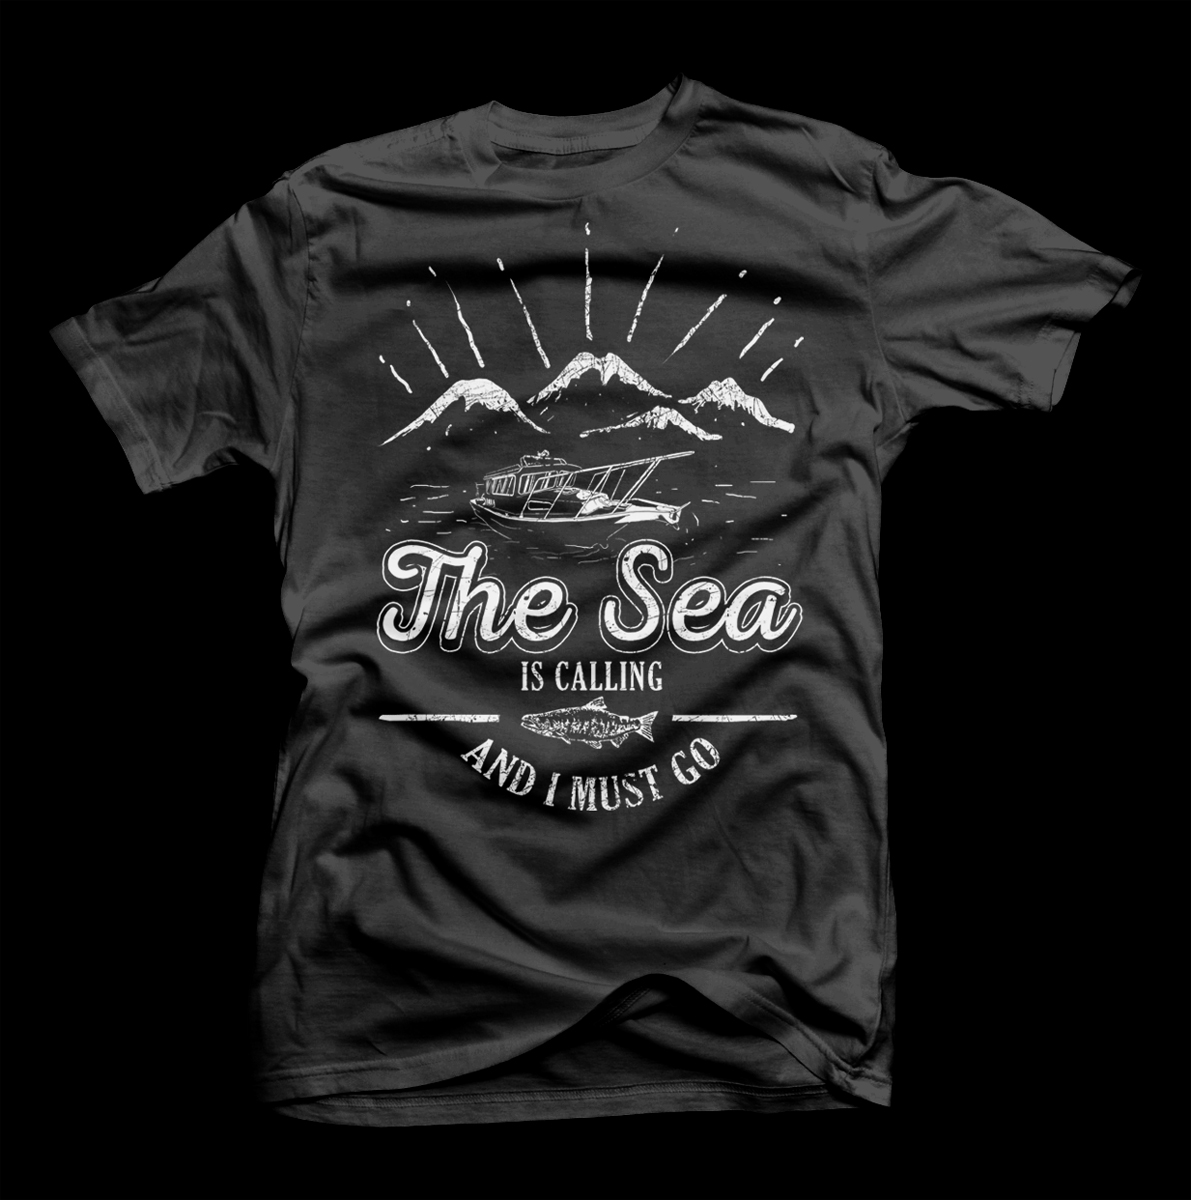 Modern professional t shirt design for tim by d 39 mono for Modern t shirt designs